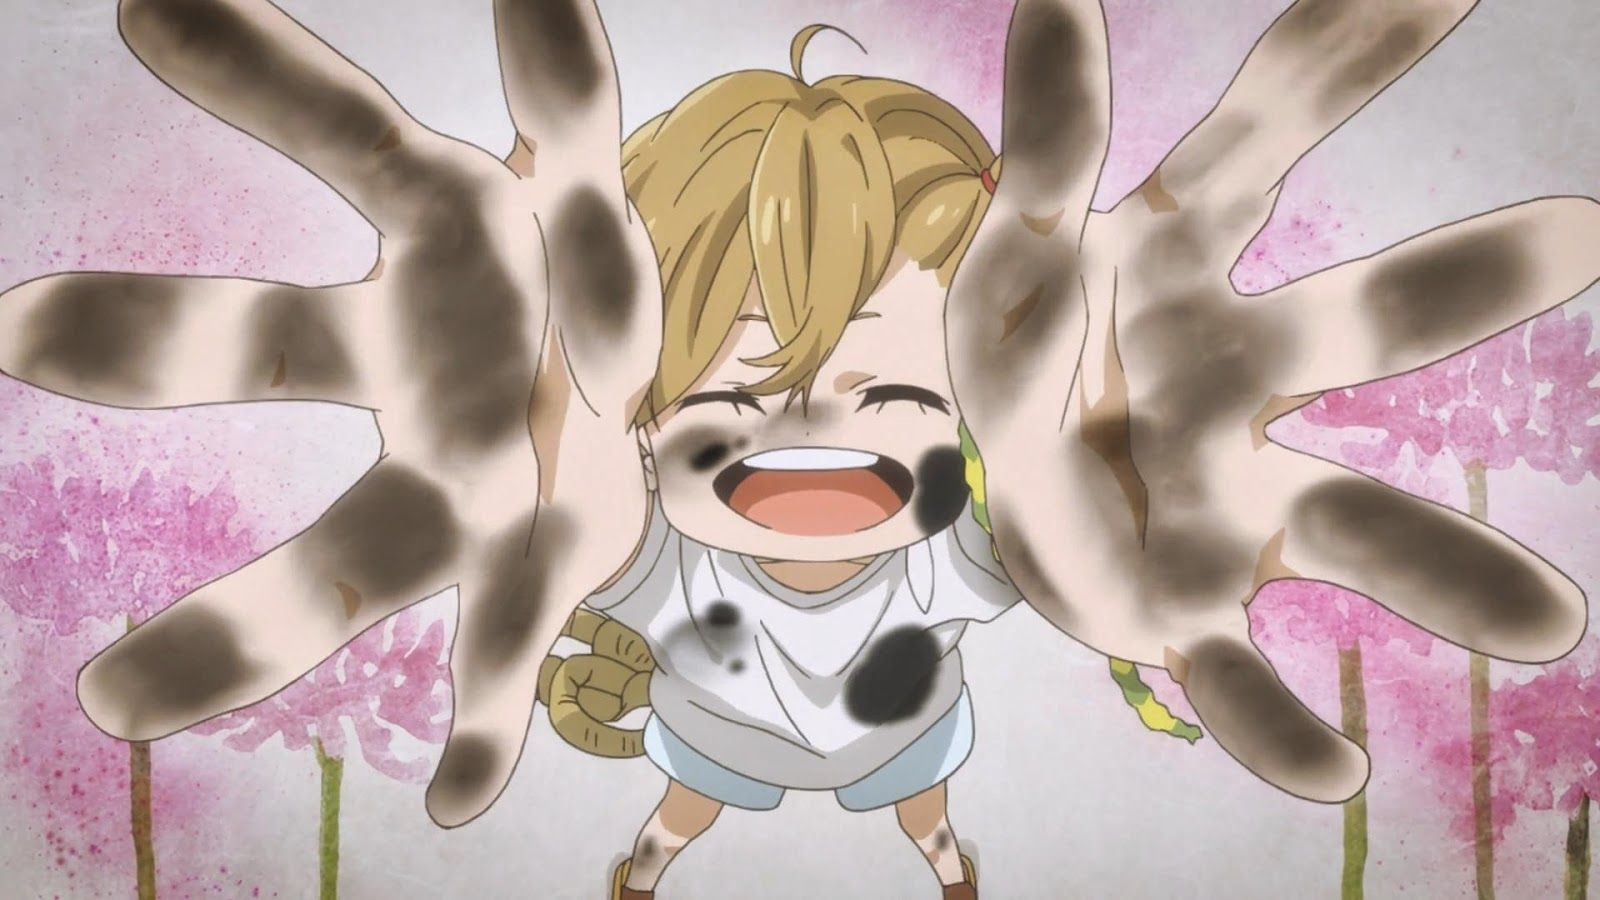 Naru Kotoishi Barakamon Anime Desktop Wallpaper Id 1744